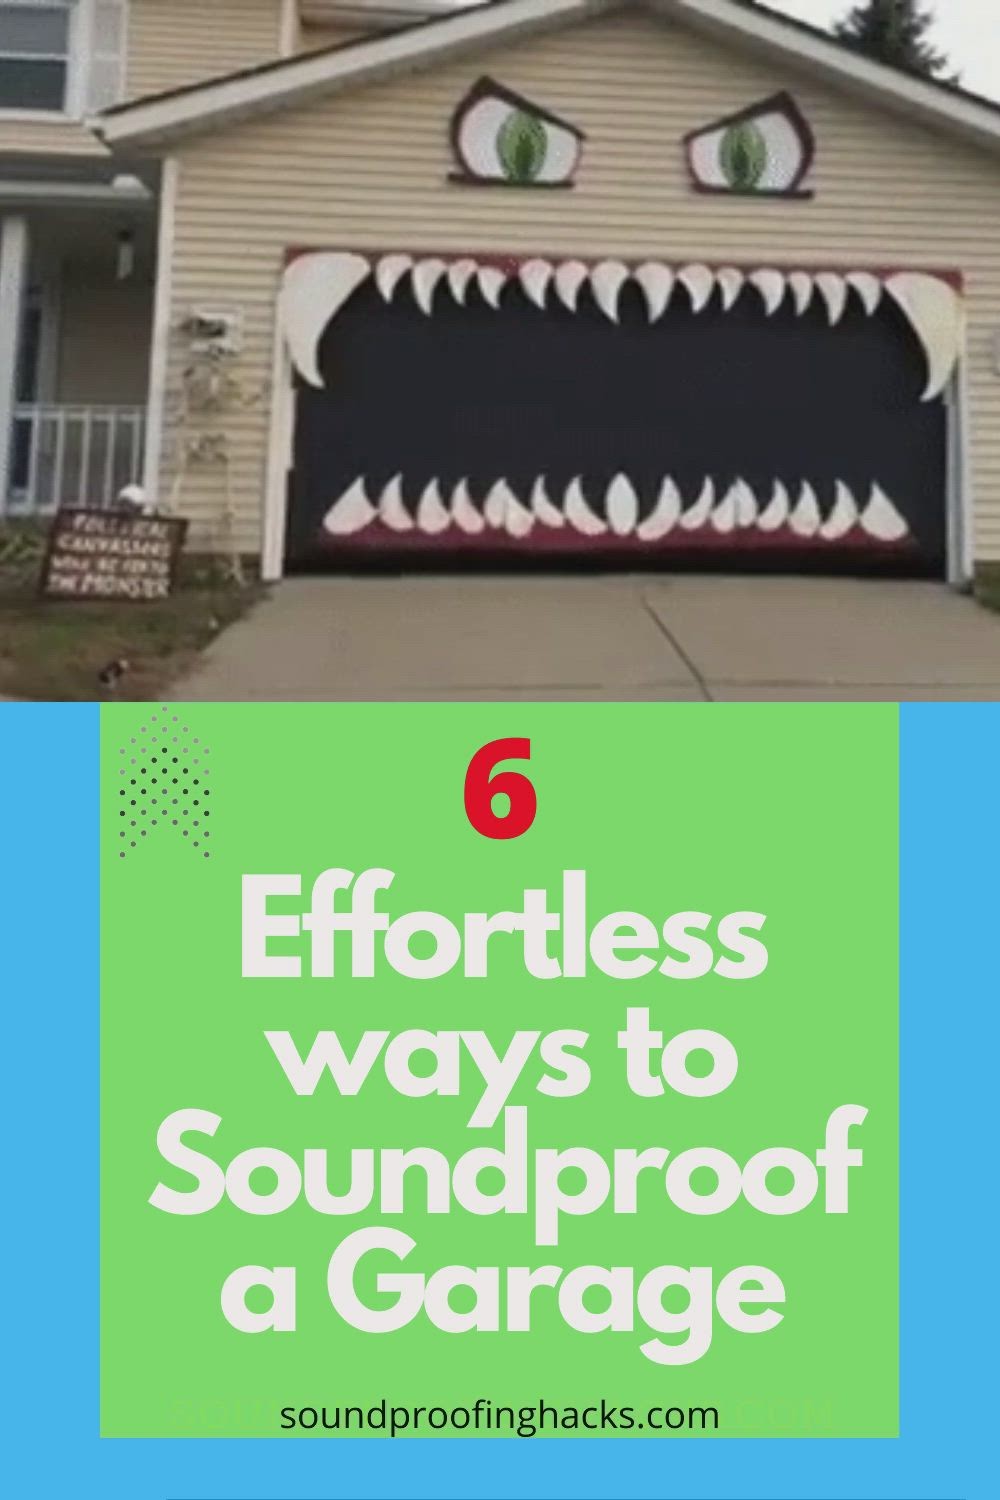 How To Soundproof A Garage It Is Not As Hard As You Think Video In 2020 Sound Proofing Home Improvement Projects Soundproofing Diy